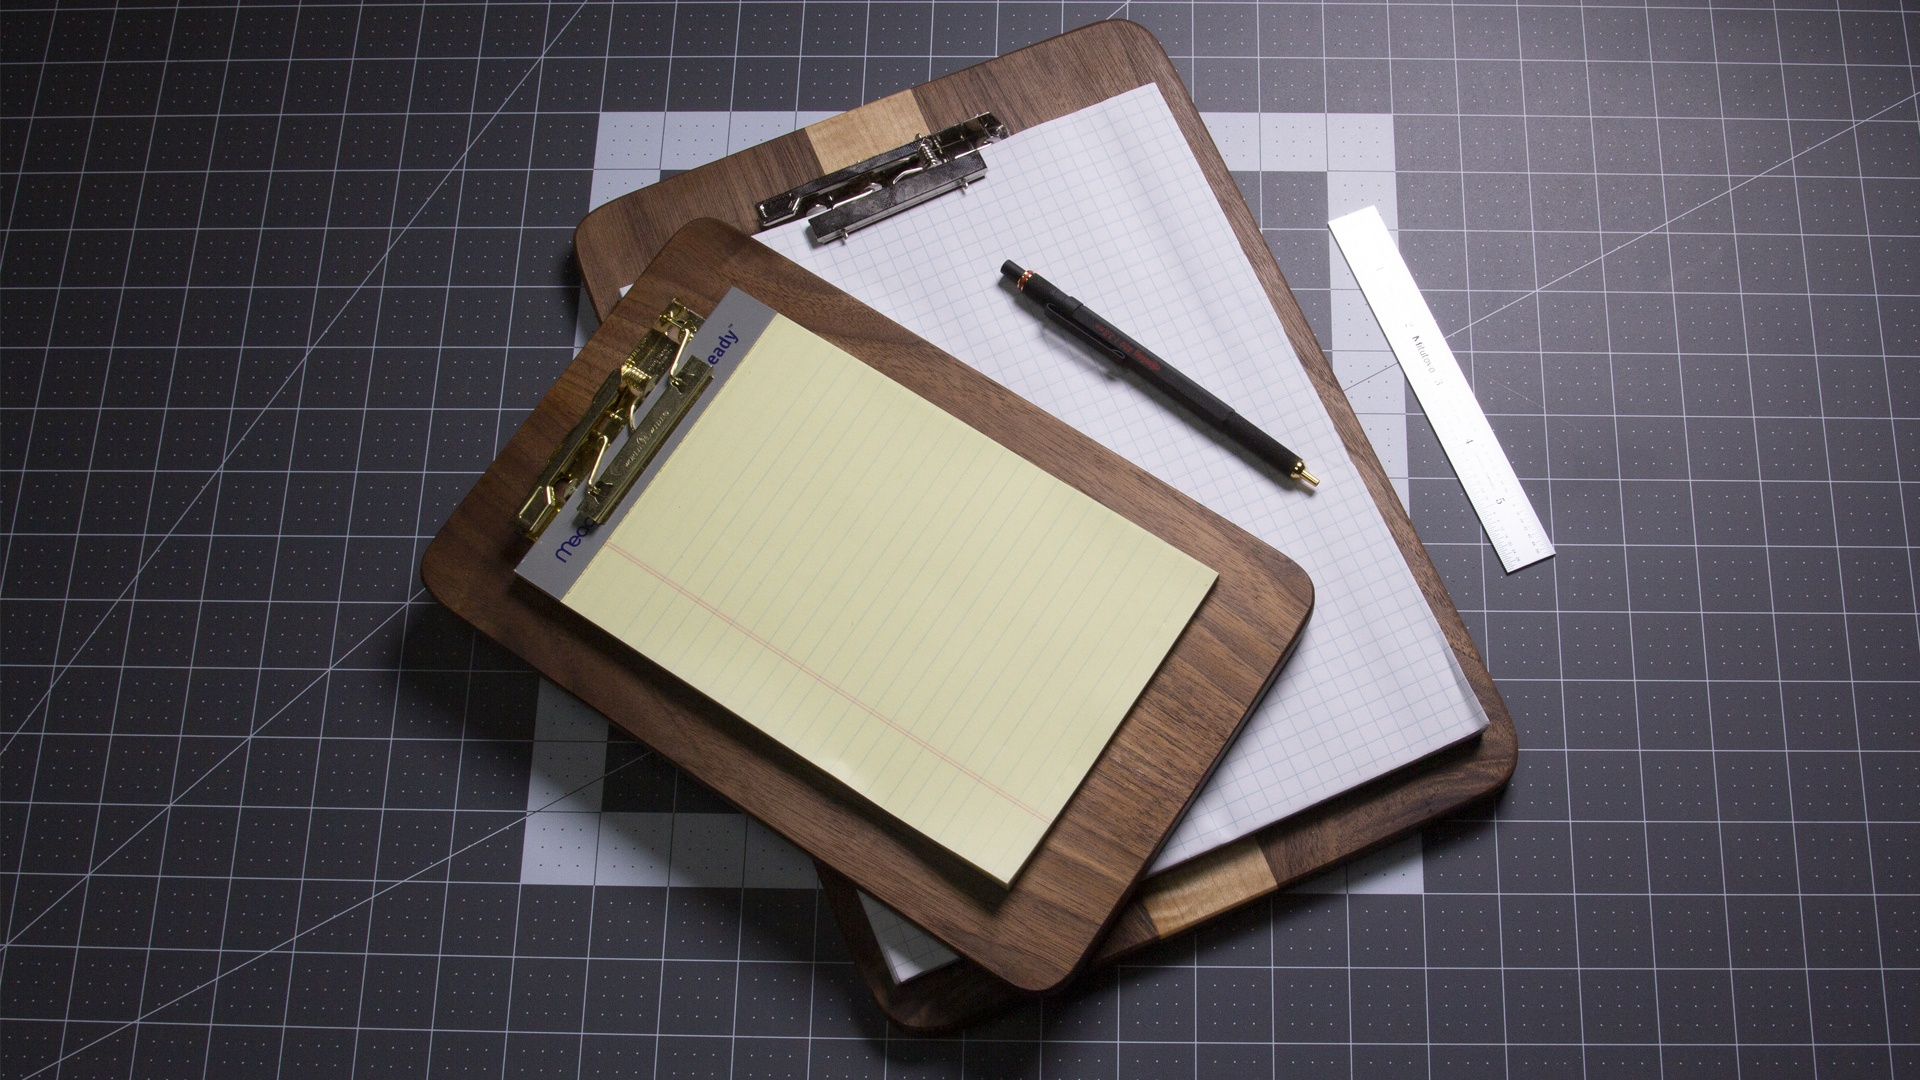 How to Make a Clipboard from Scrap Wood